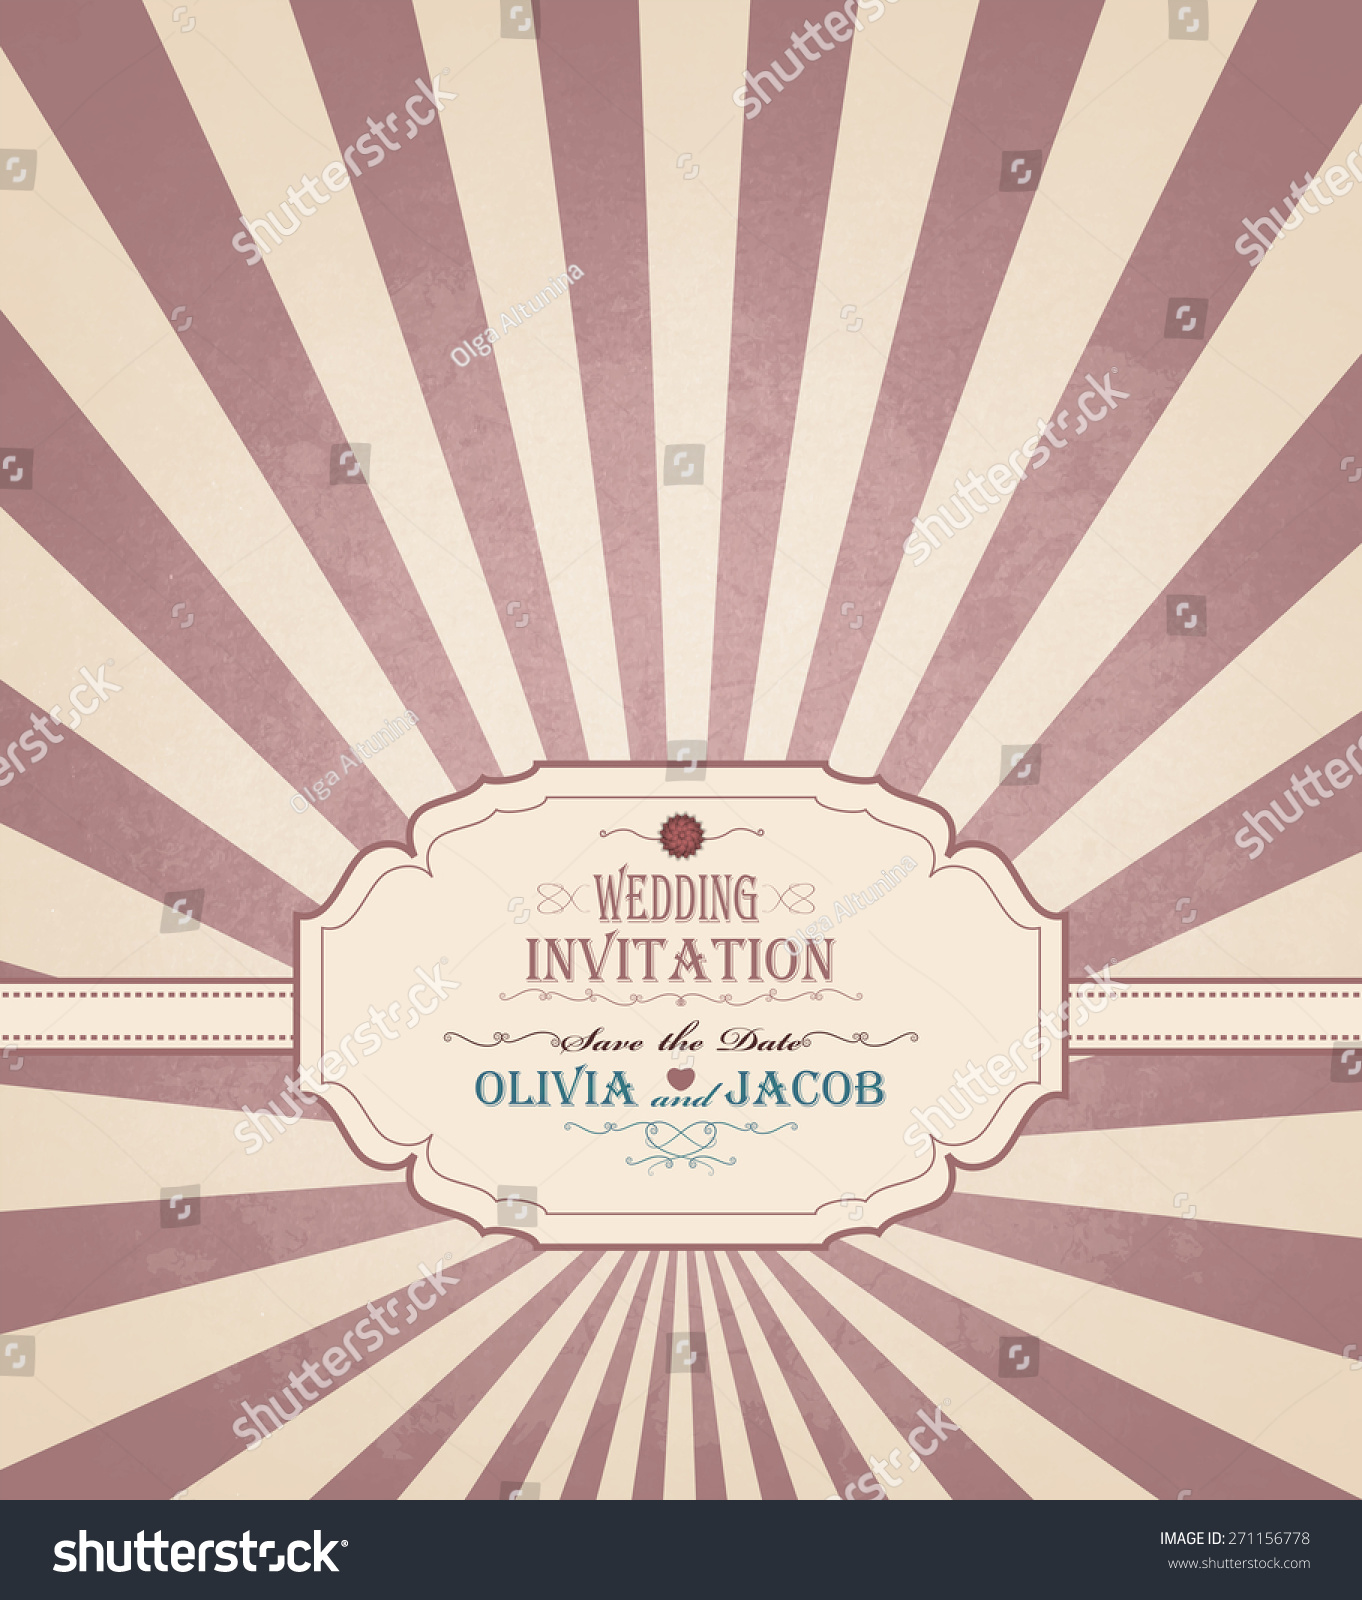 Vintage Wedding Invitation Grunge Background Title Stock